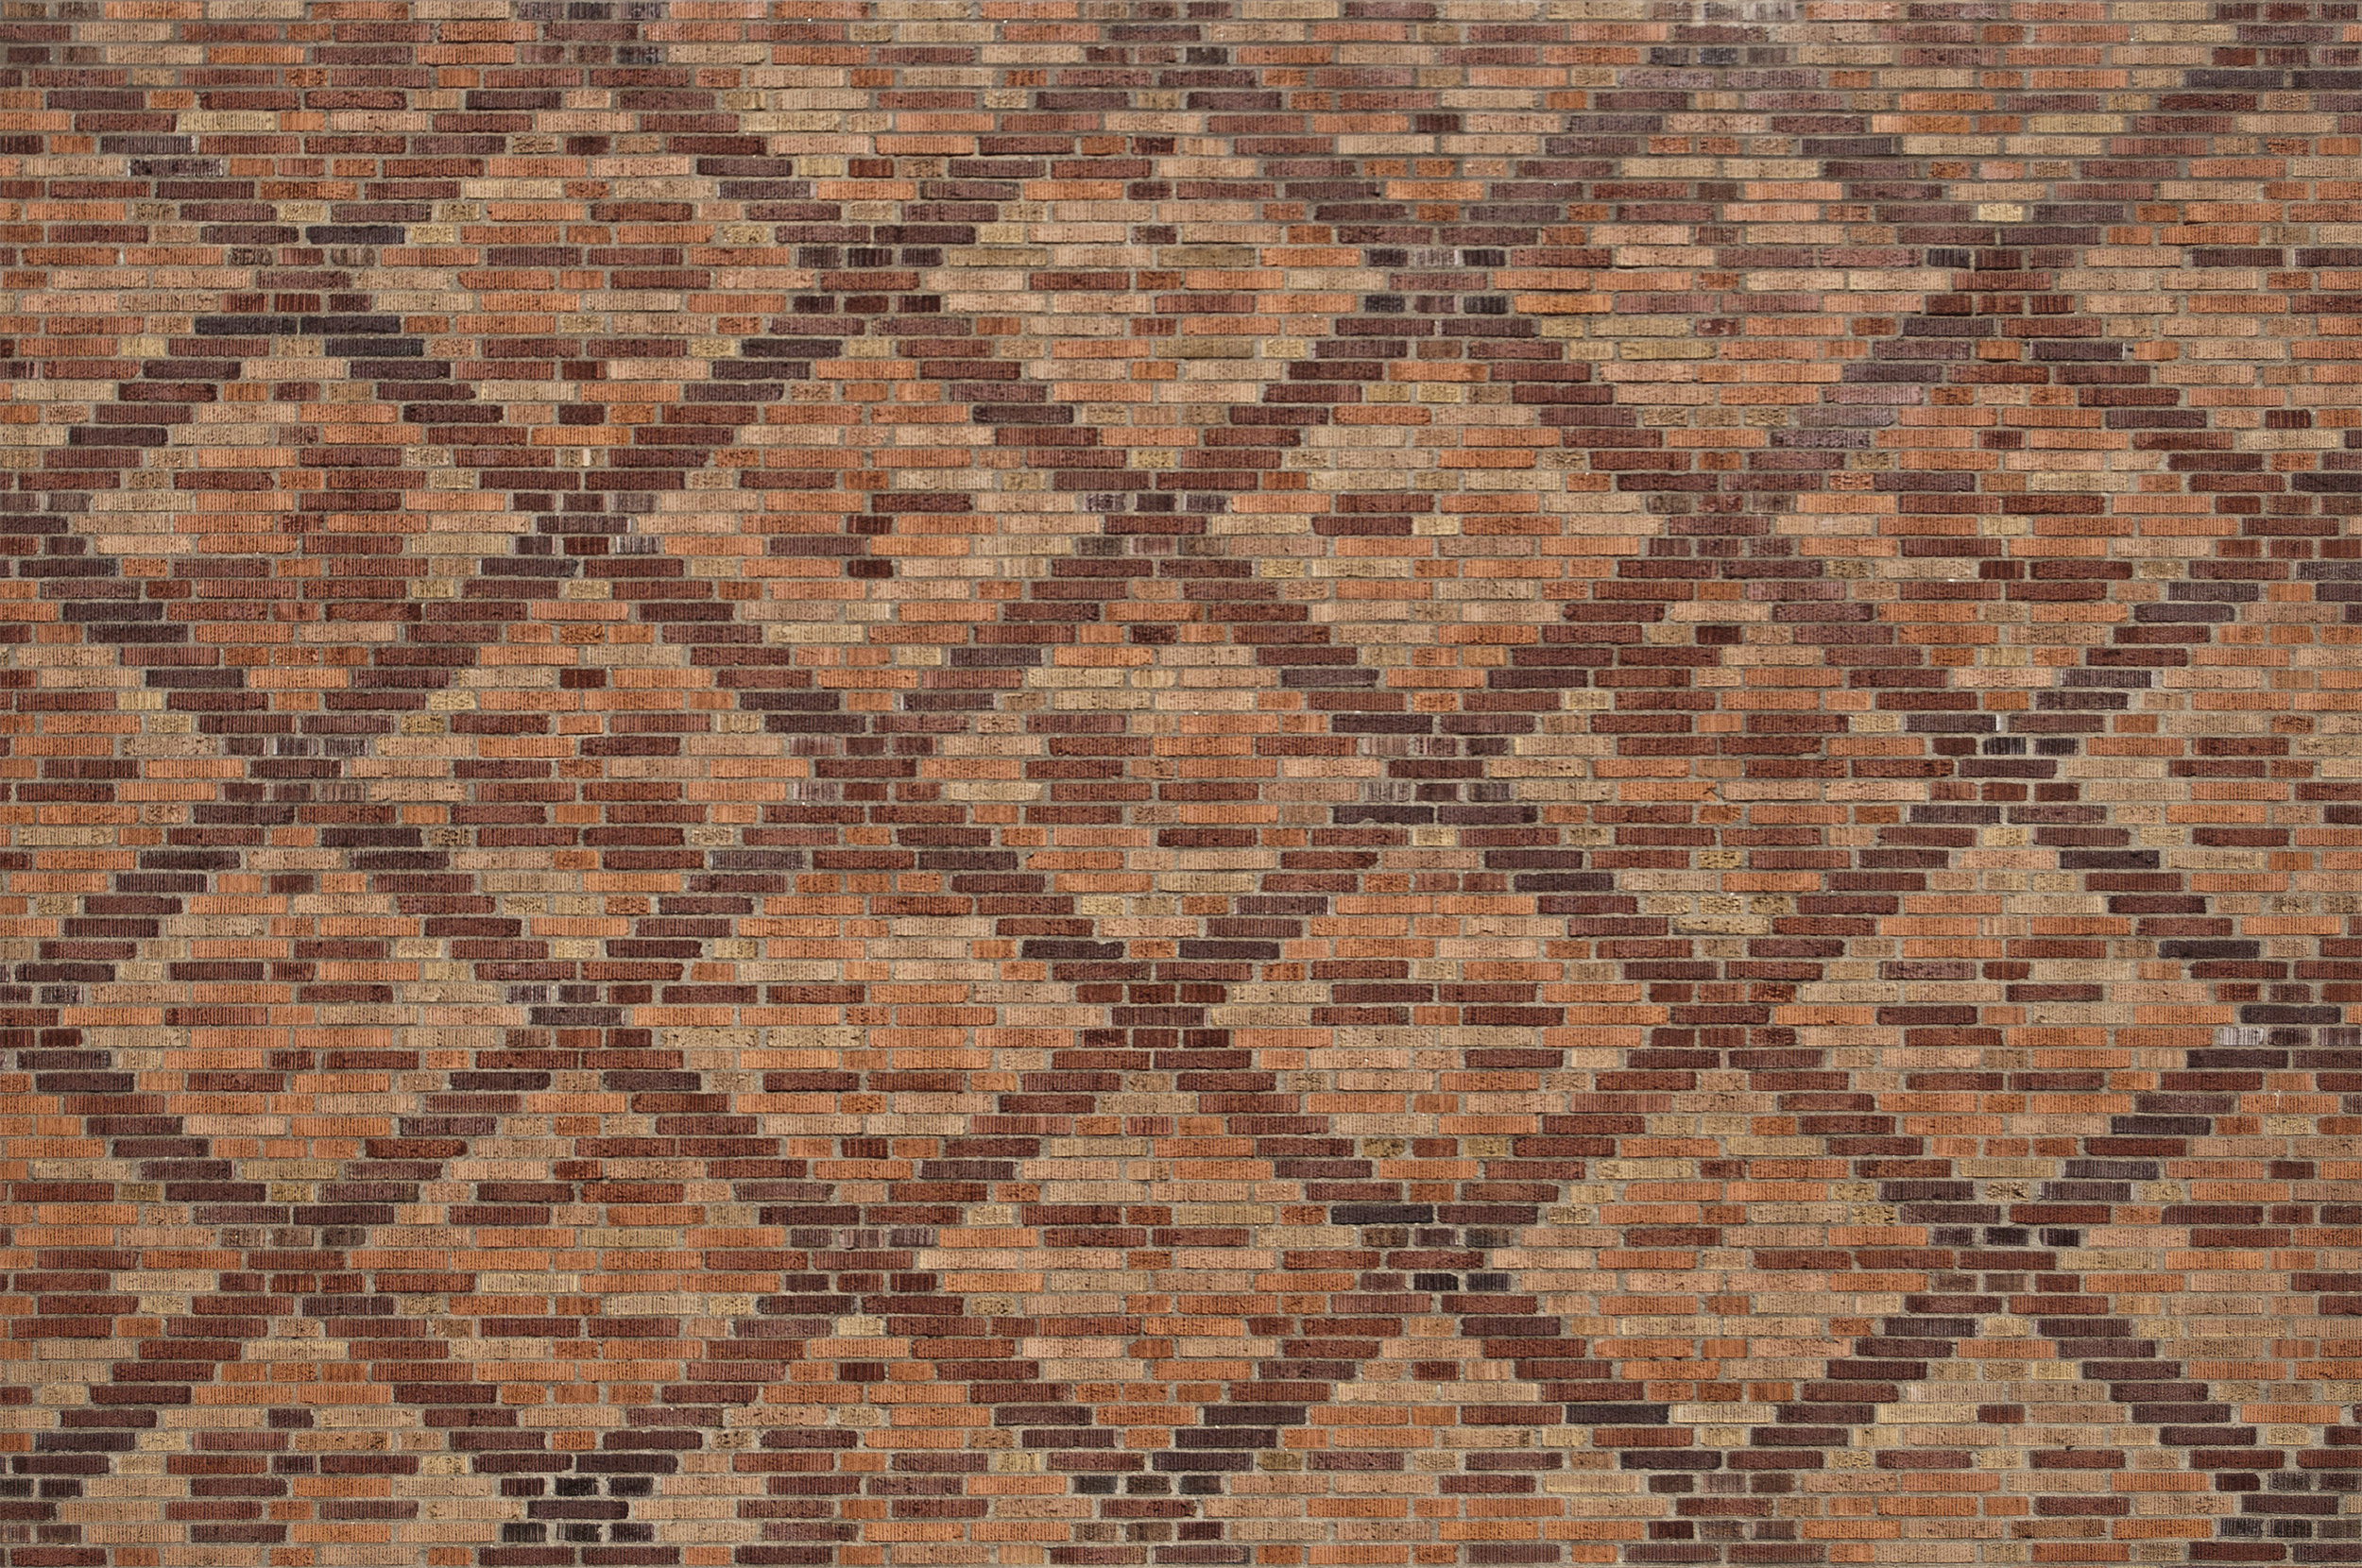 4 Unique Brick-Laying Patterns that Add Interest to Any Masonry Project in Milford, NH